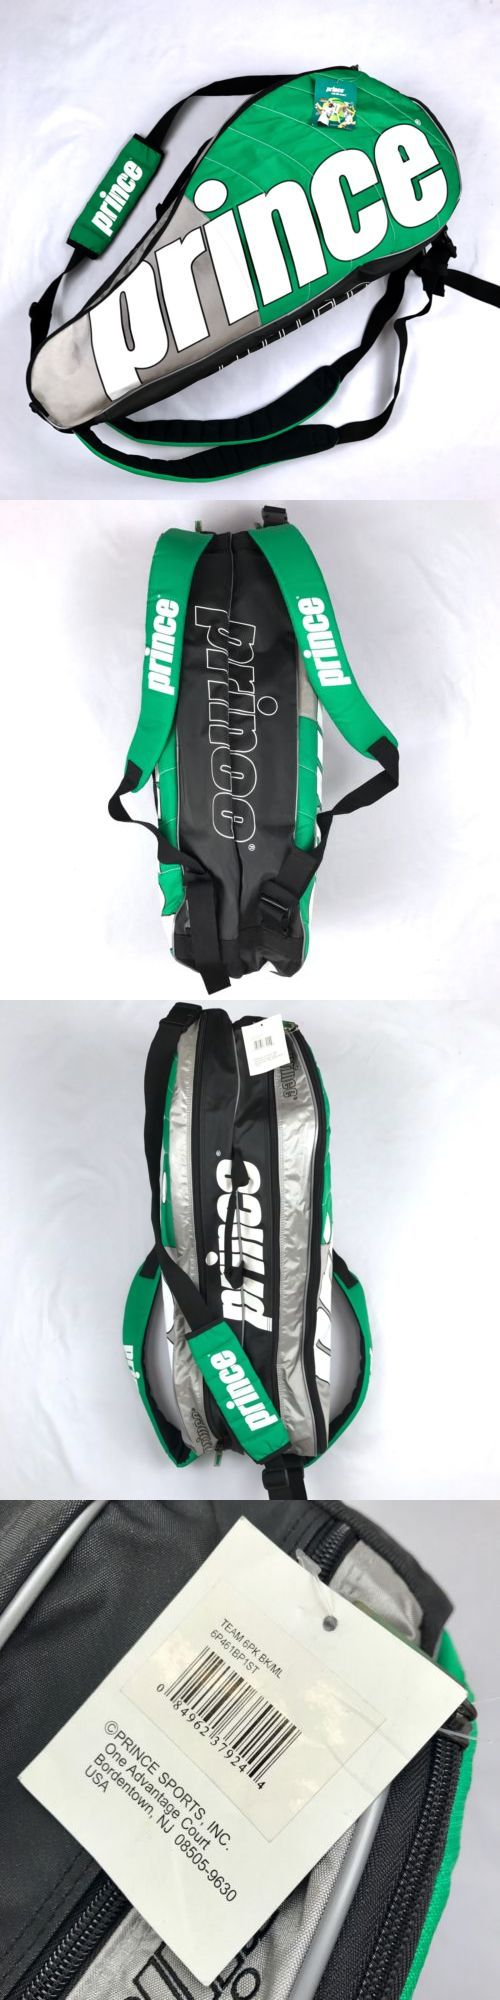 Bags 20869: Prince Tennis Racquets Team 6Pk Carrying Bag 6 Case Backpack Straps Racquet -> BUY IT NOW ONLY: $38.49 on eBay!